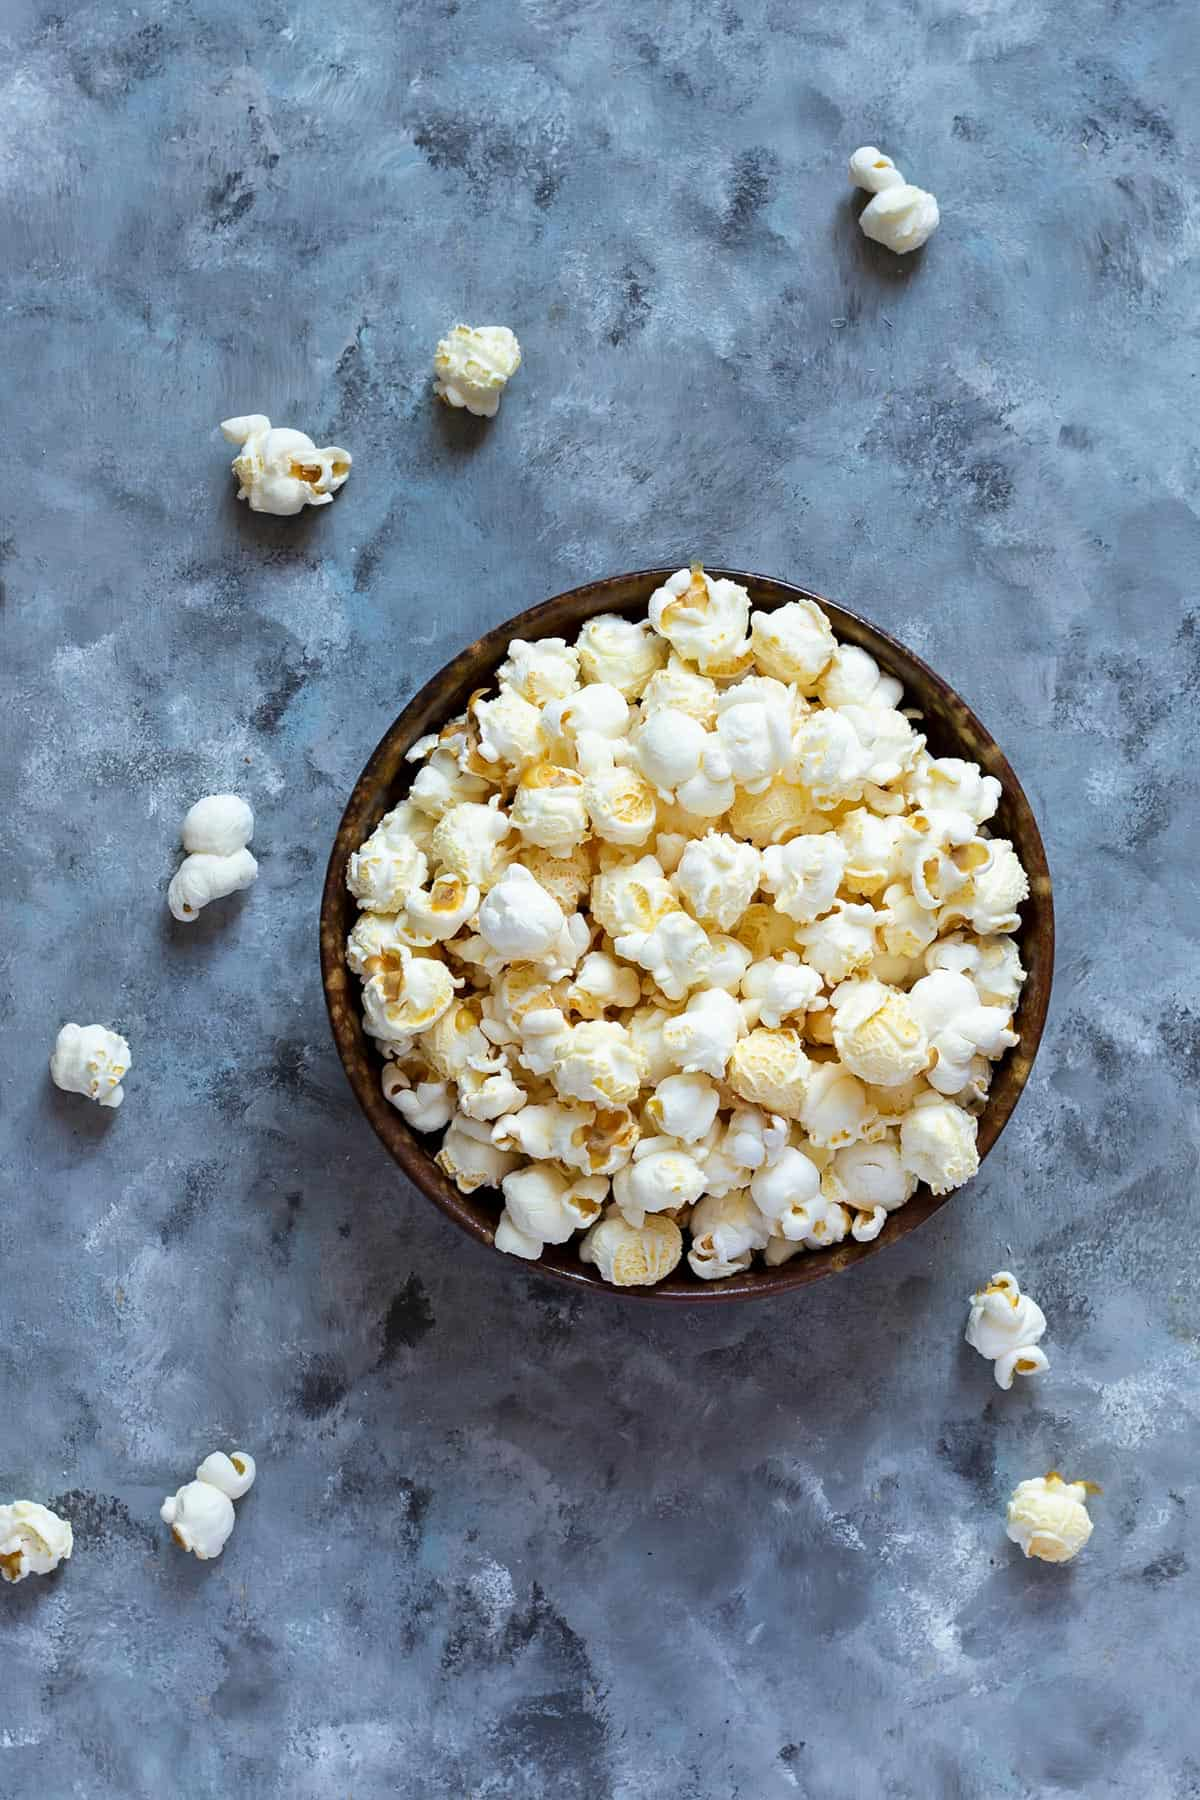 Conventional Store-bought Popcorn